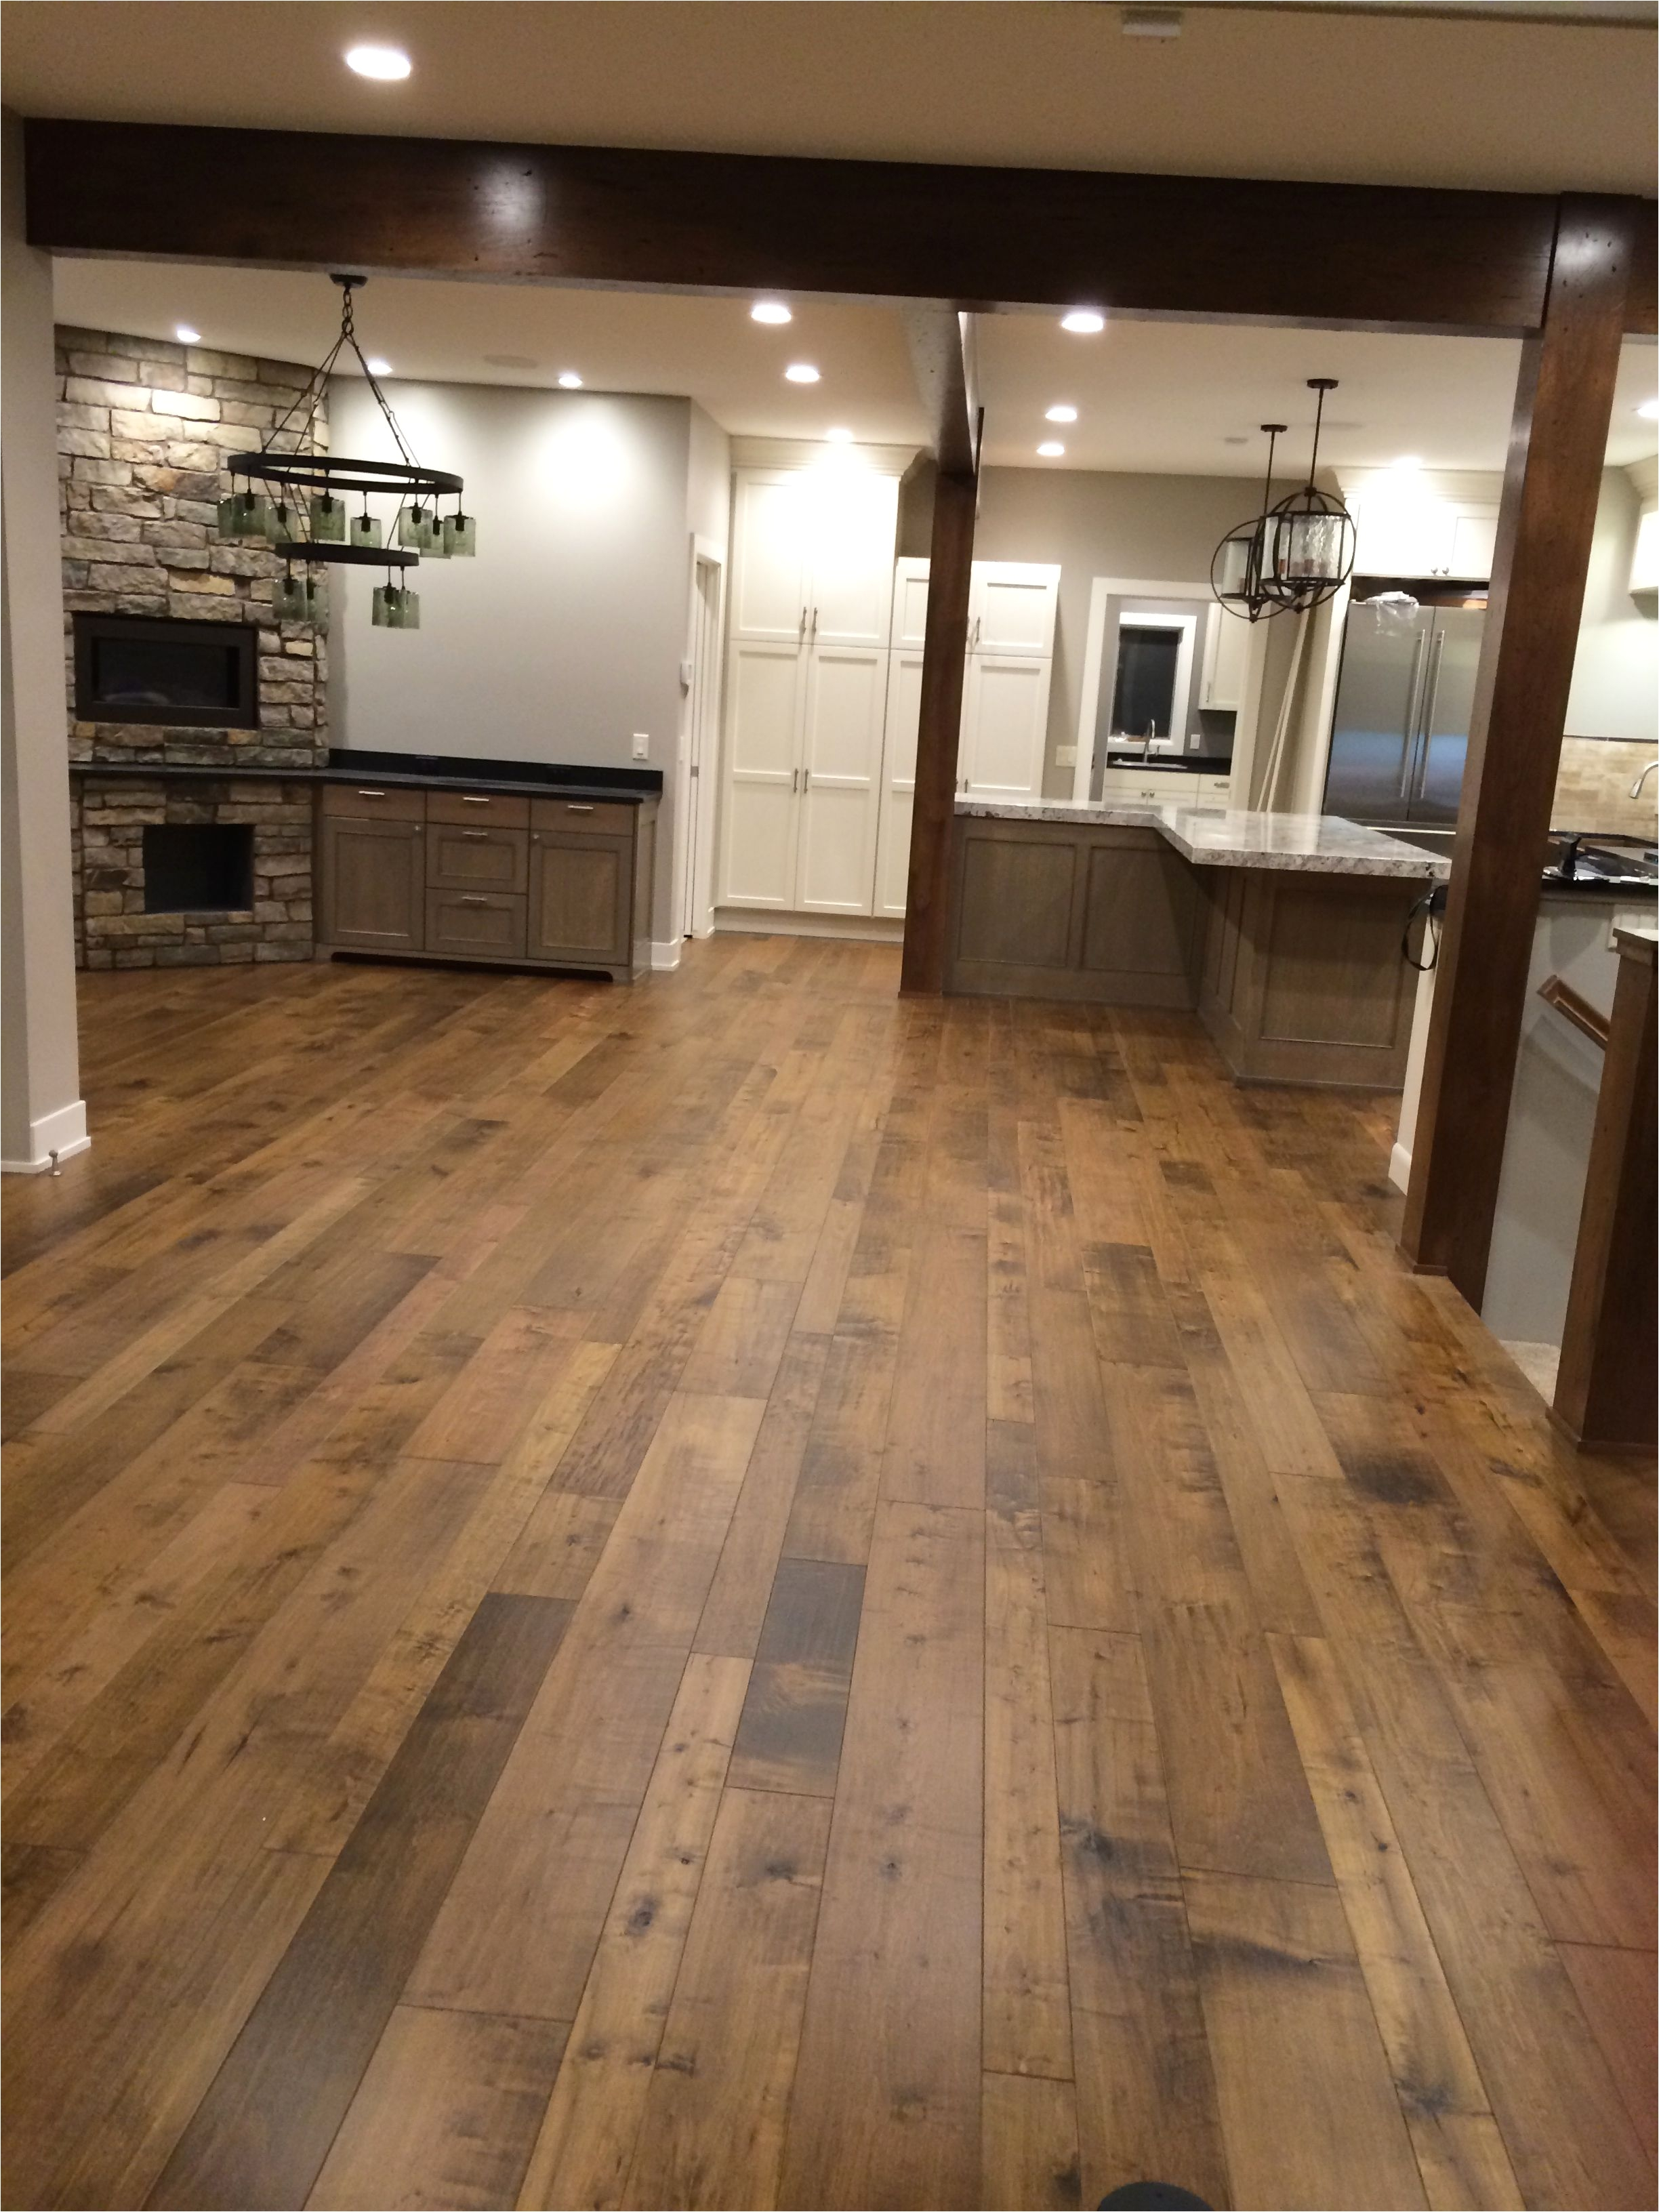 East Windsor Flooring Monterey Hardwood Collection Rooms and Spaces Pinterest